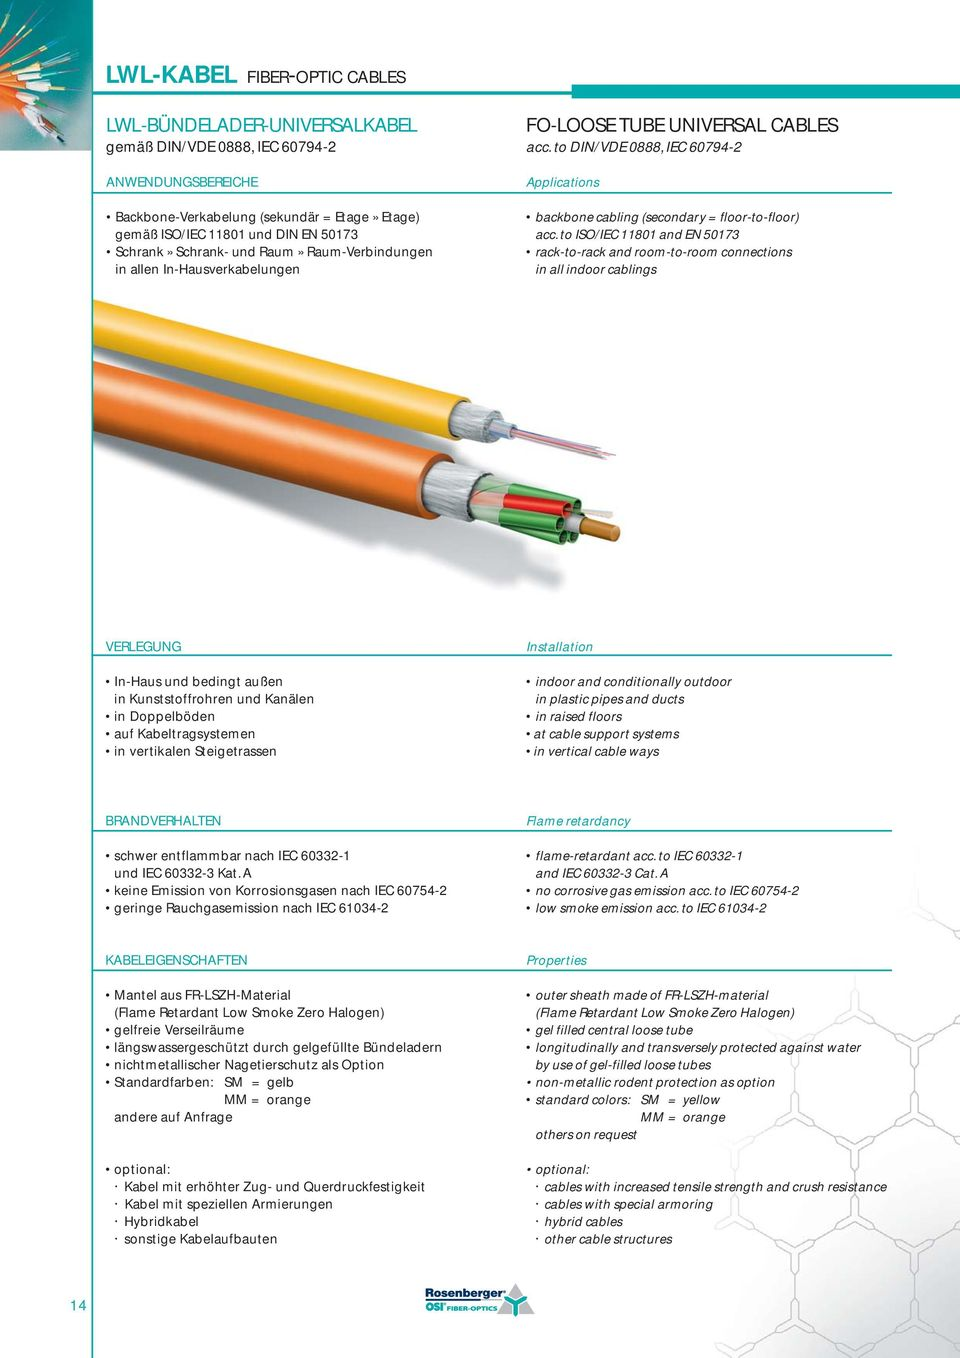 to DIN/VDE 0888, IEC 60794-2 Applications backbone cabling (secondary = floor-to-floor) acc.